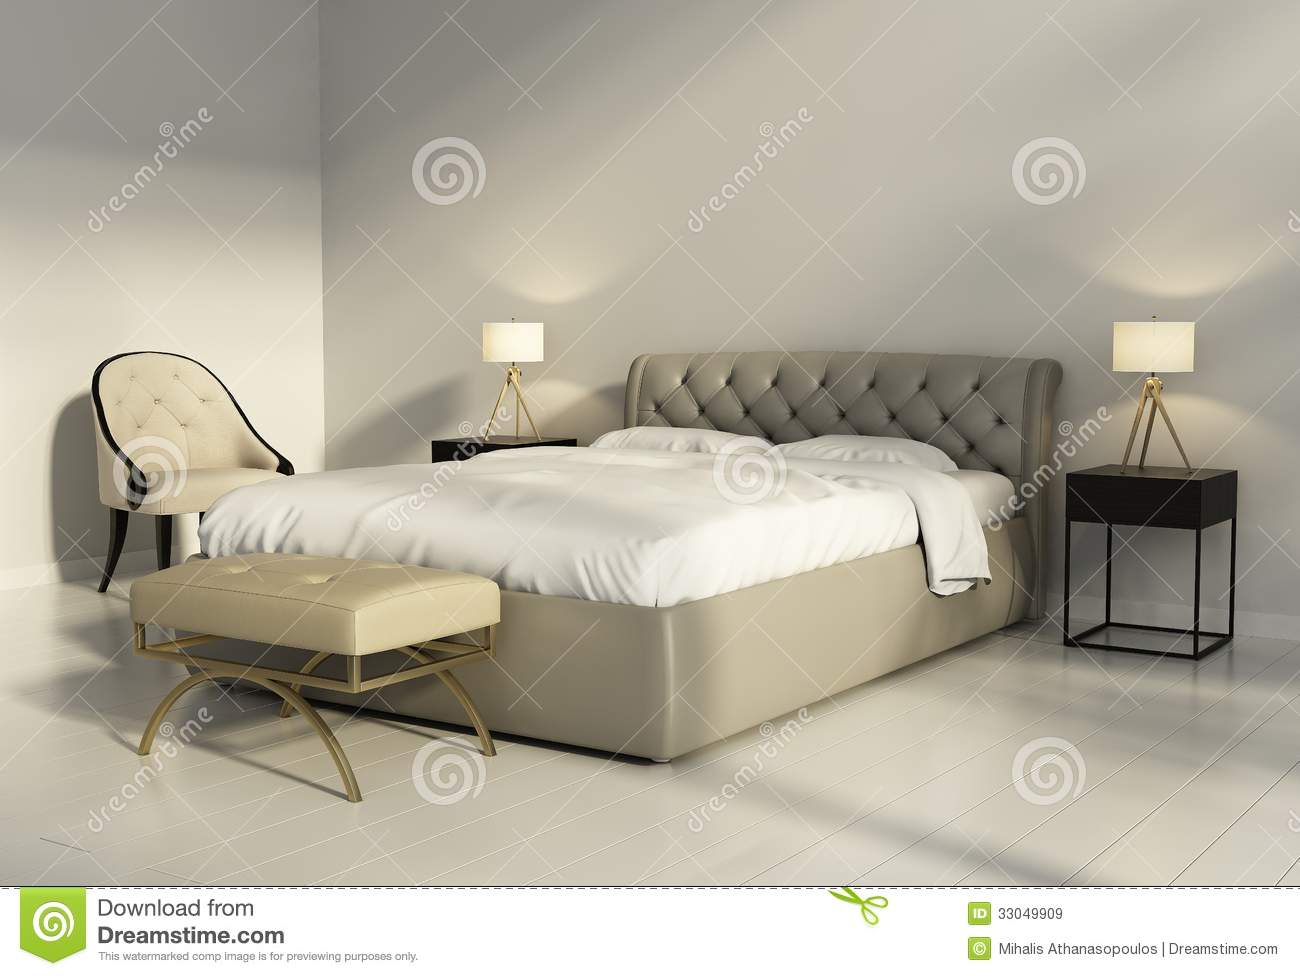 lit en cuir tuft chic dans la chambre coucher chic contemporaine image stock image du. Black Bedroom Furniture Sets. Home Design Ideas